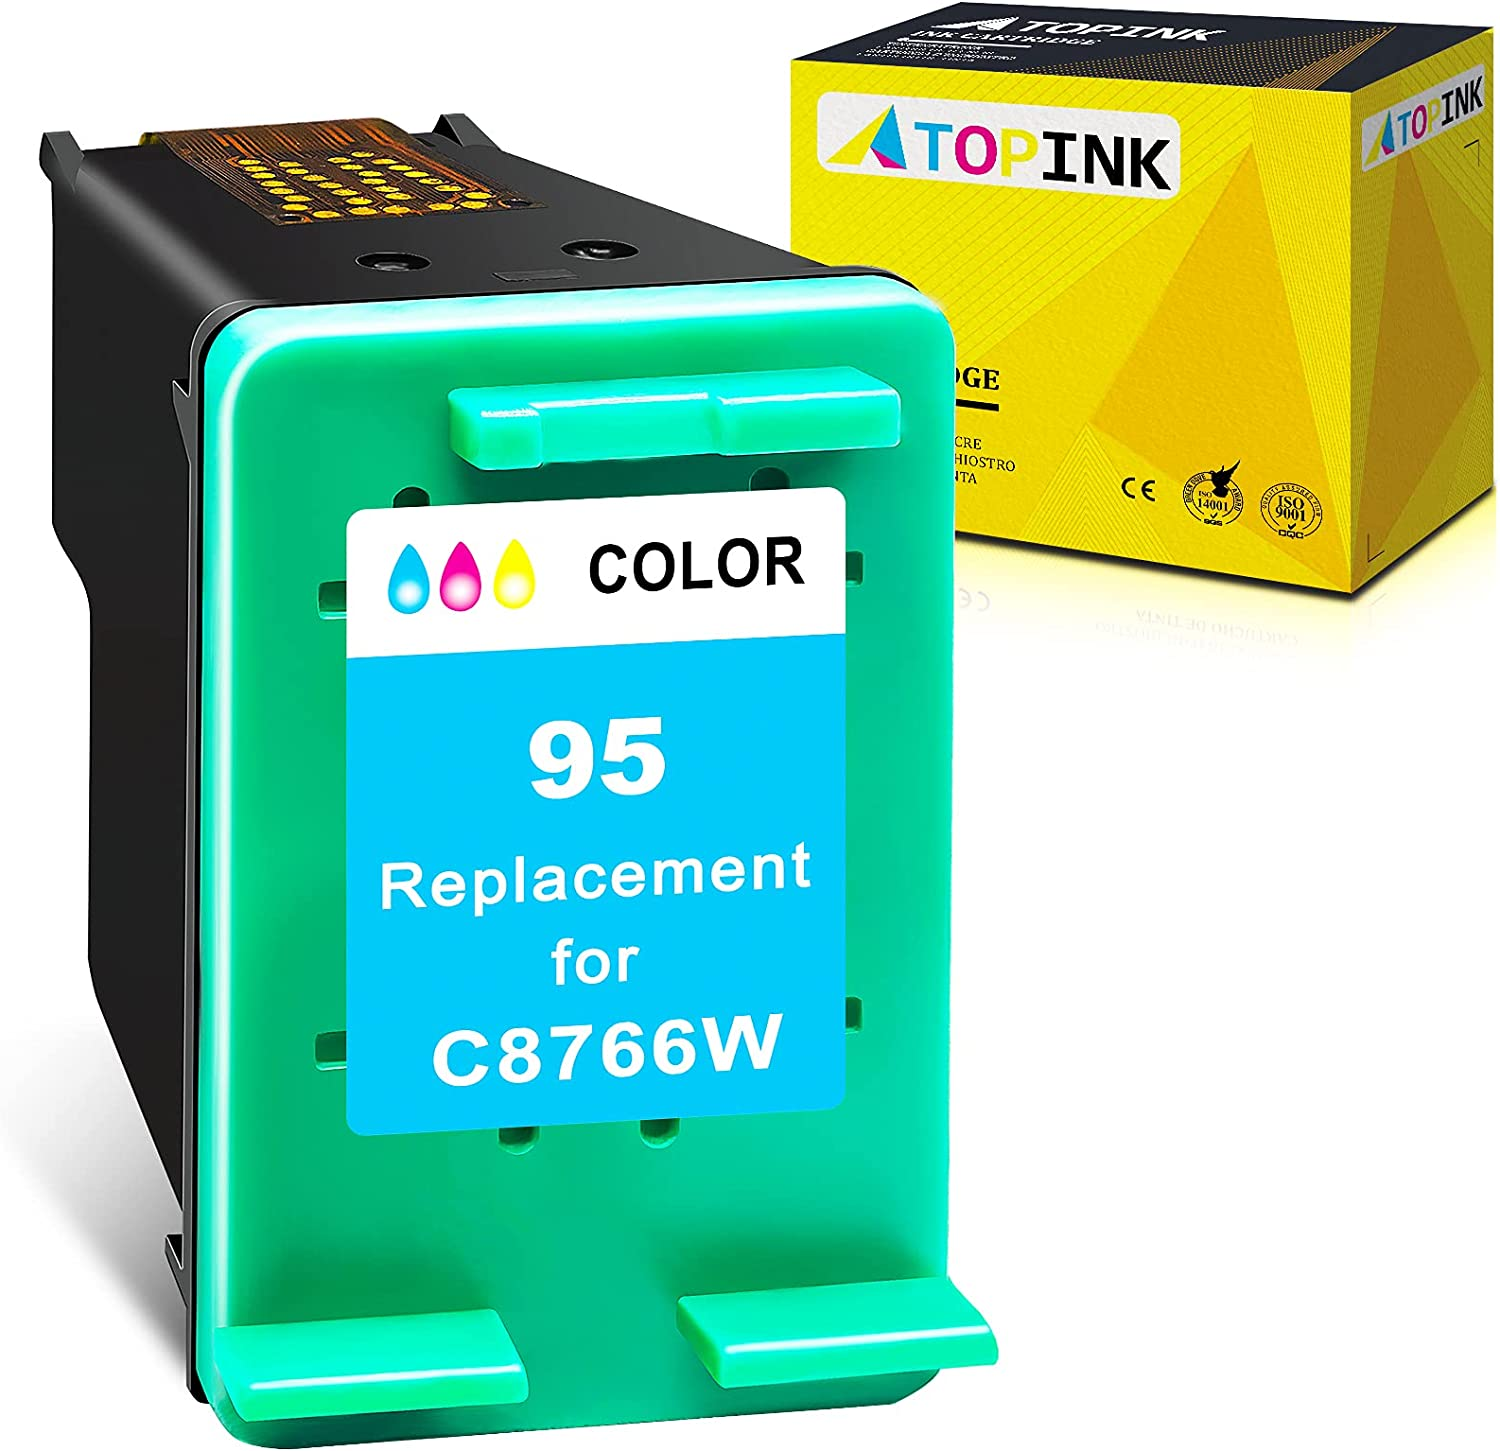 ATOPINK Remanufactured Ink Cartridge Replacement for HP95 95 Work with Officejet 100 150 7410 7210 6210 Photosmart 2610 C3180 C3140 8150 2575 c3100 8450 C3135 Psc 1510 1610 1500 Printer (1 Tri-Color)